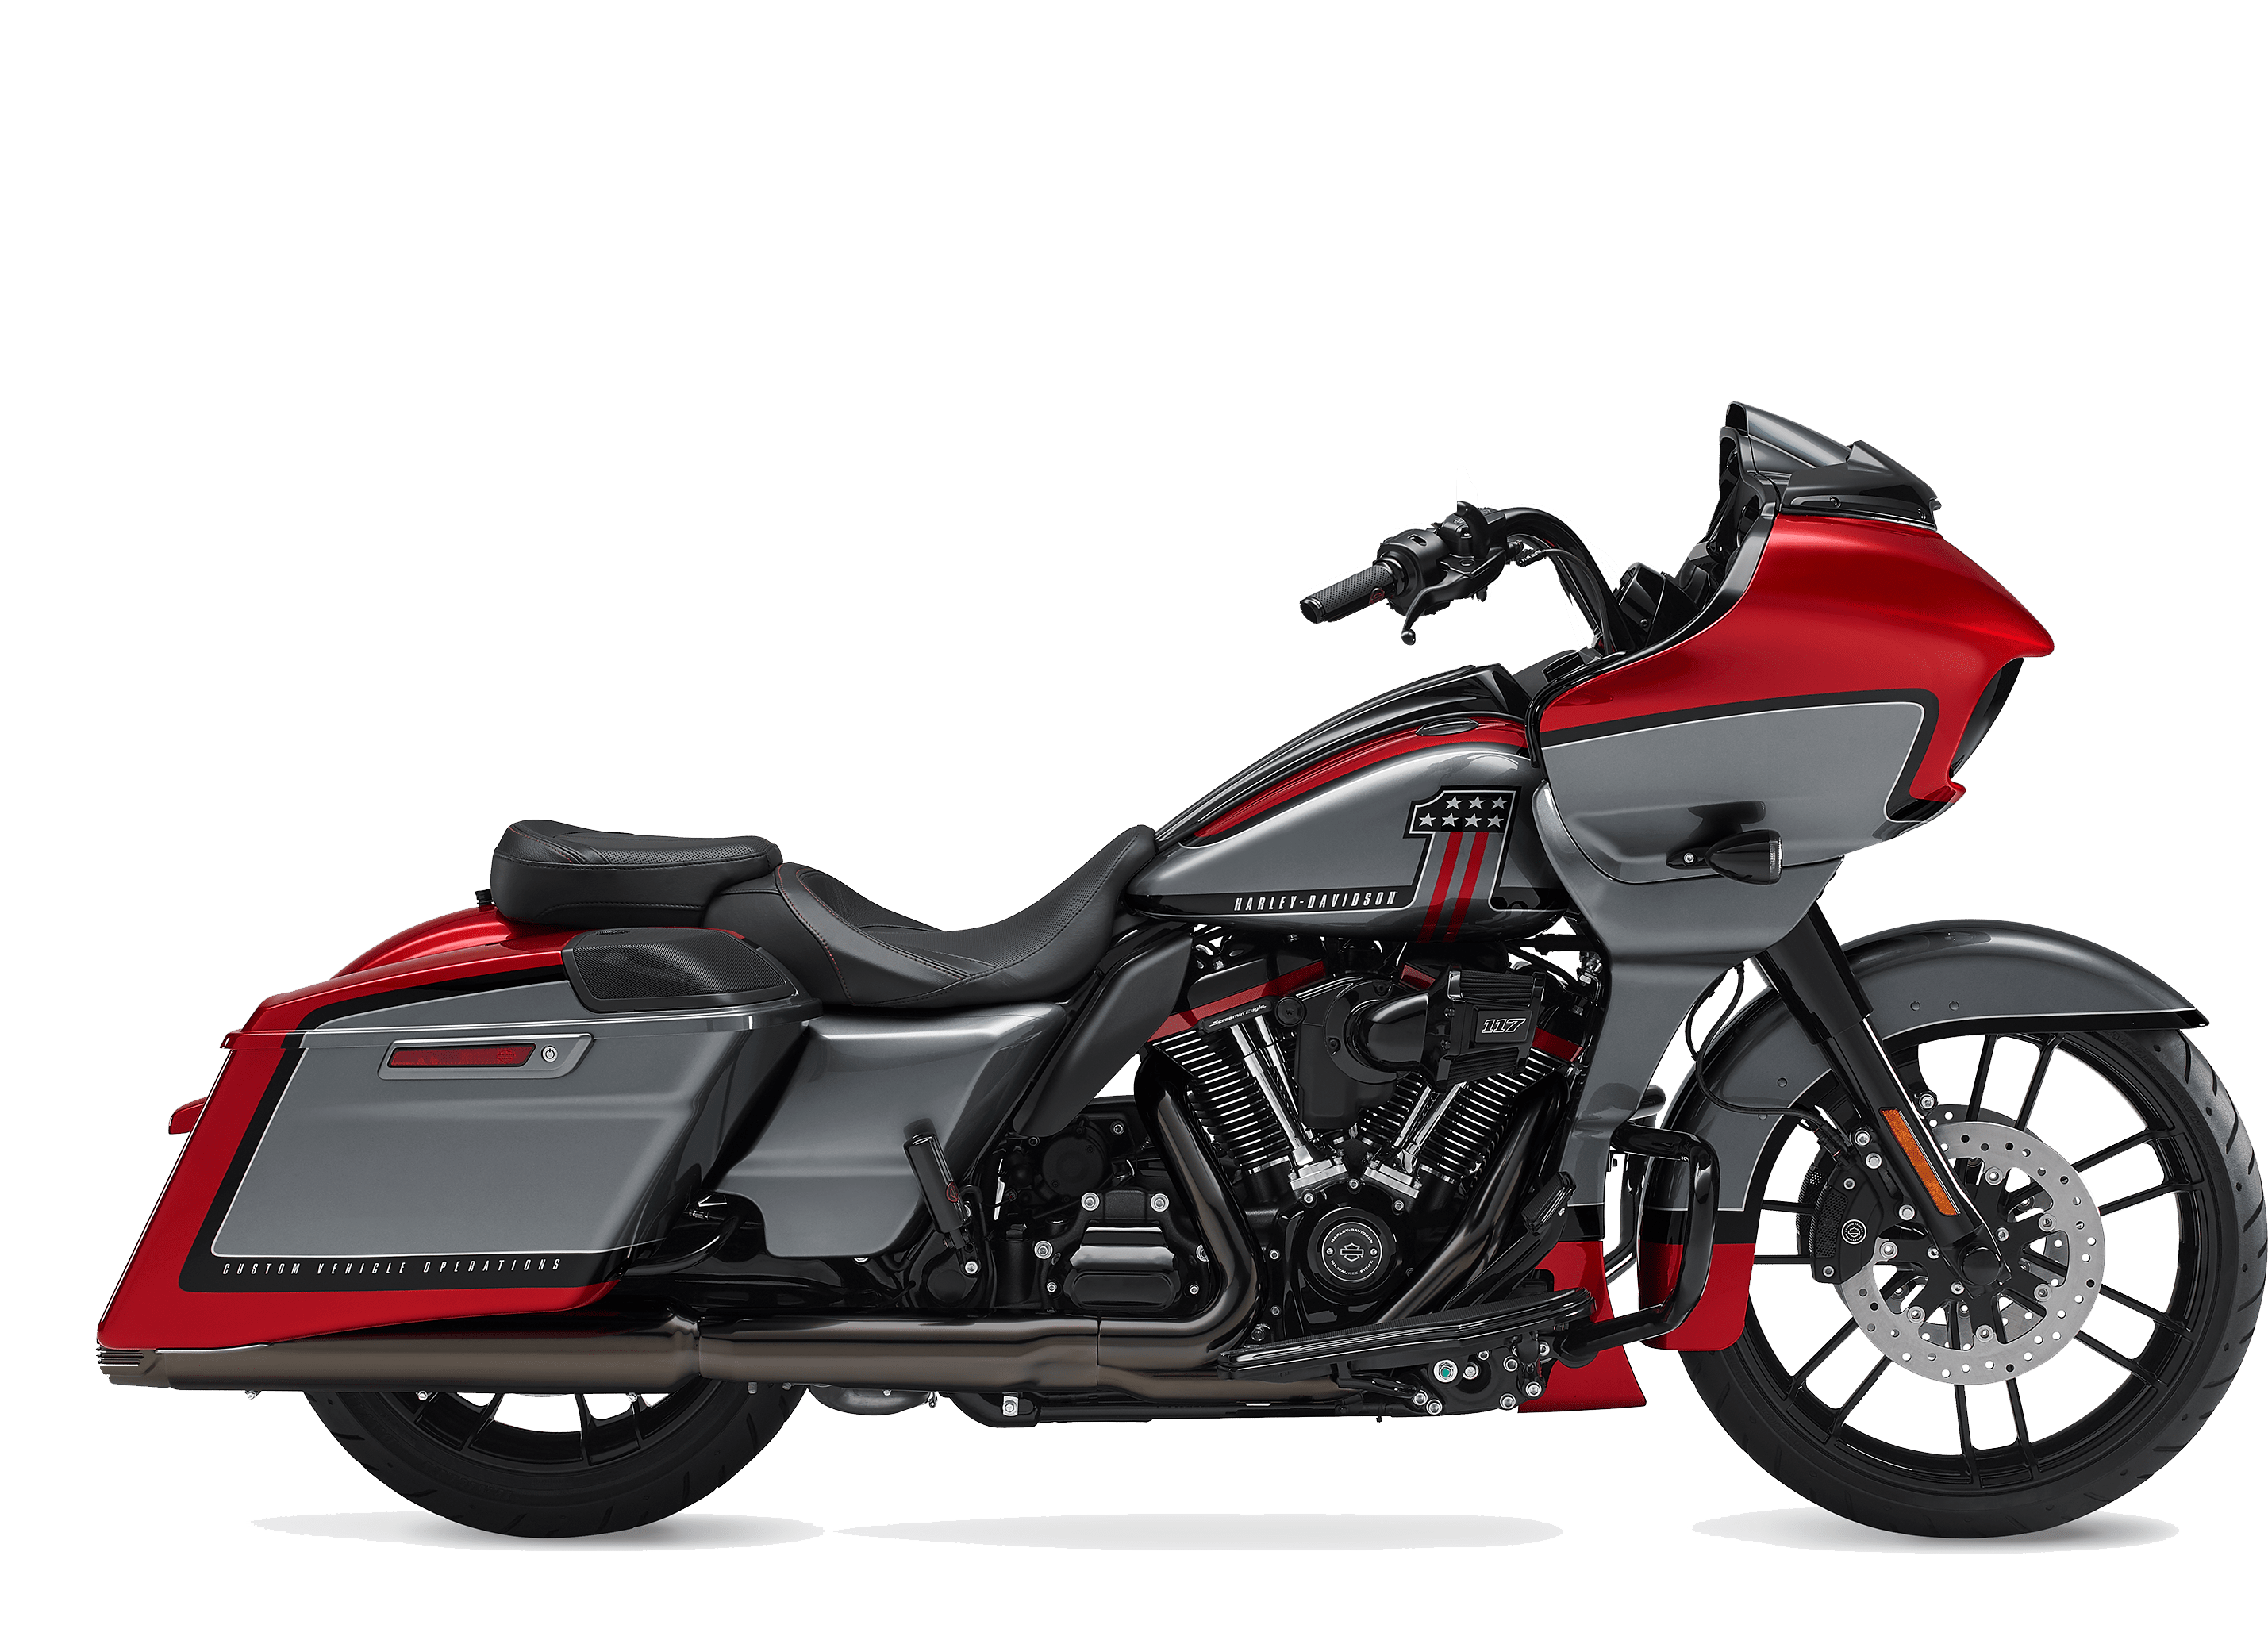 2019 Harley-Davidson H-D CVO Road Glide Red Pepper Magnetic Gray with Black Hole